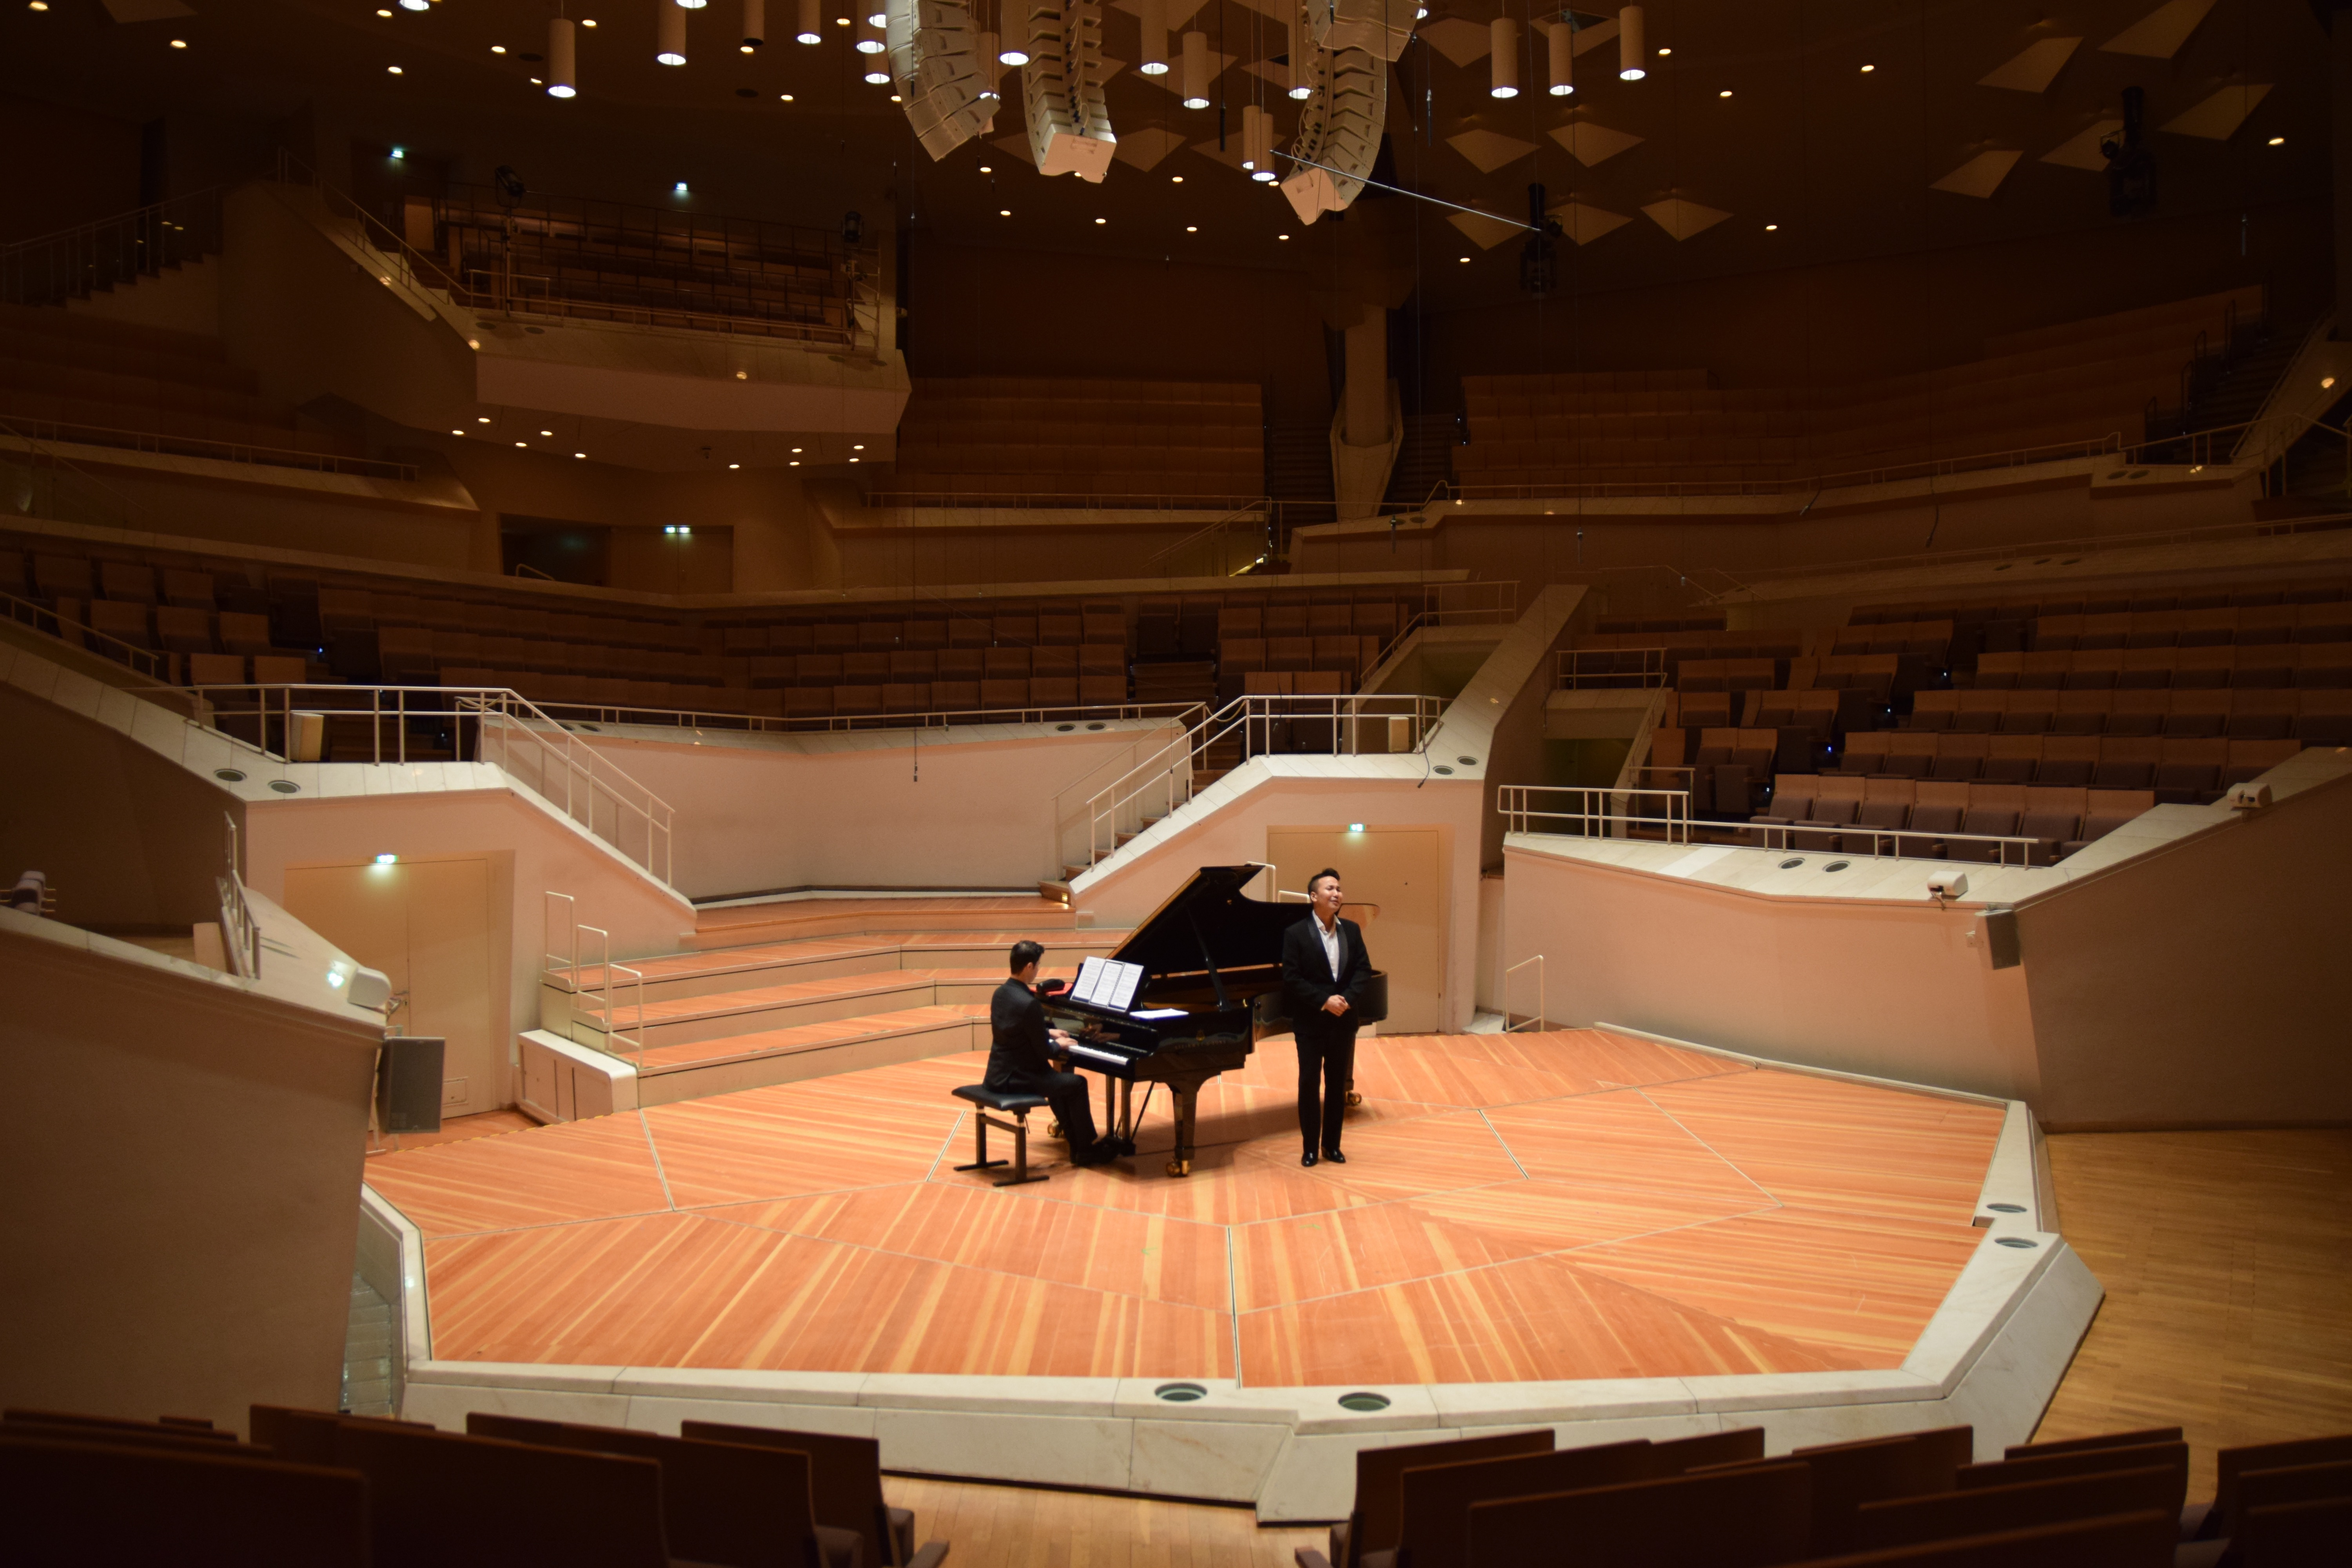 berliner music competition 56